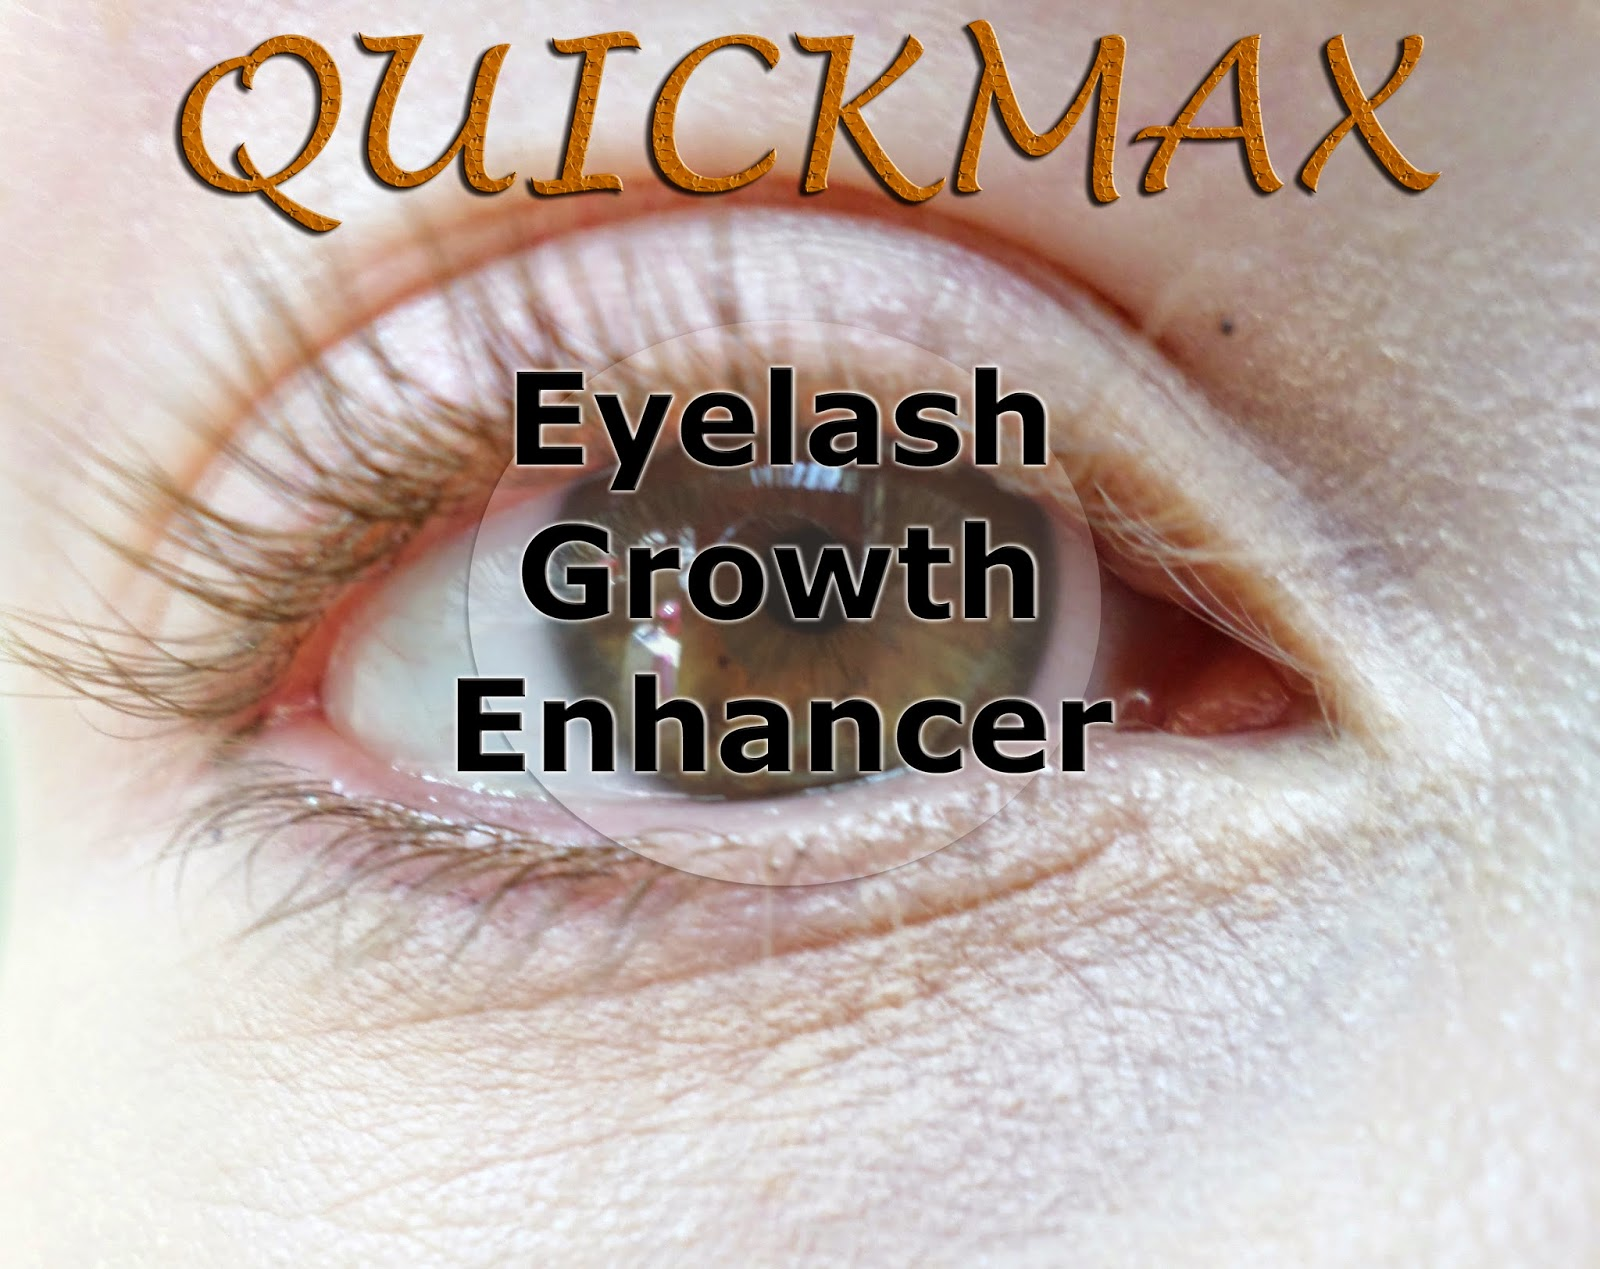 53abd59093b This QUICKMAX Eyelash Growth Enhancer is definitely one of the most unusual  beauty products I've ever tried. It's a growth serum that promises fuller  and ...